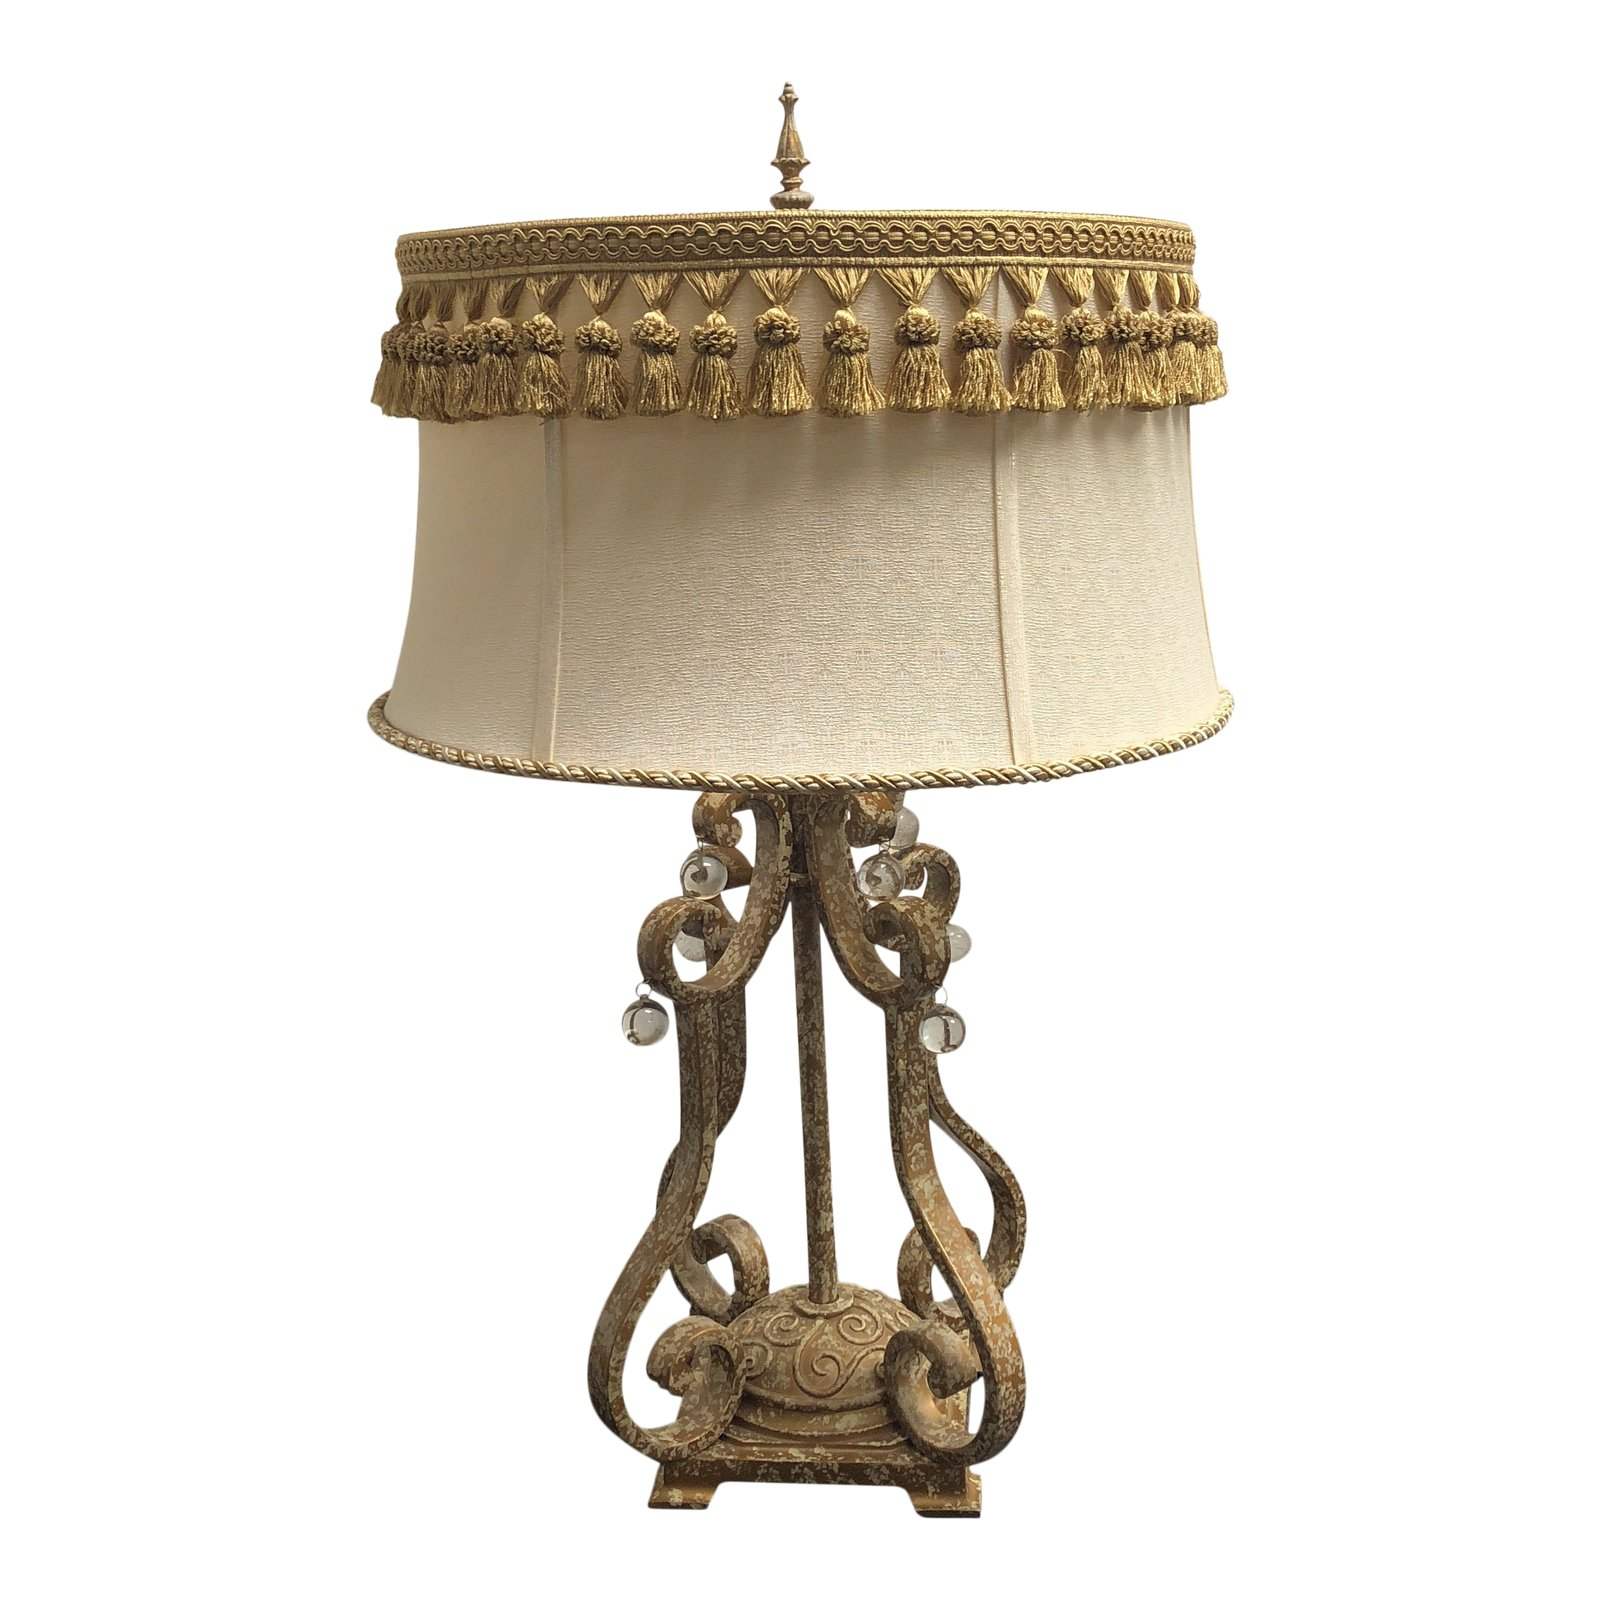 distressed table lamps shabby chic rococo distressed gold finish table lamp design plus gallery